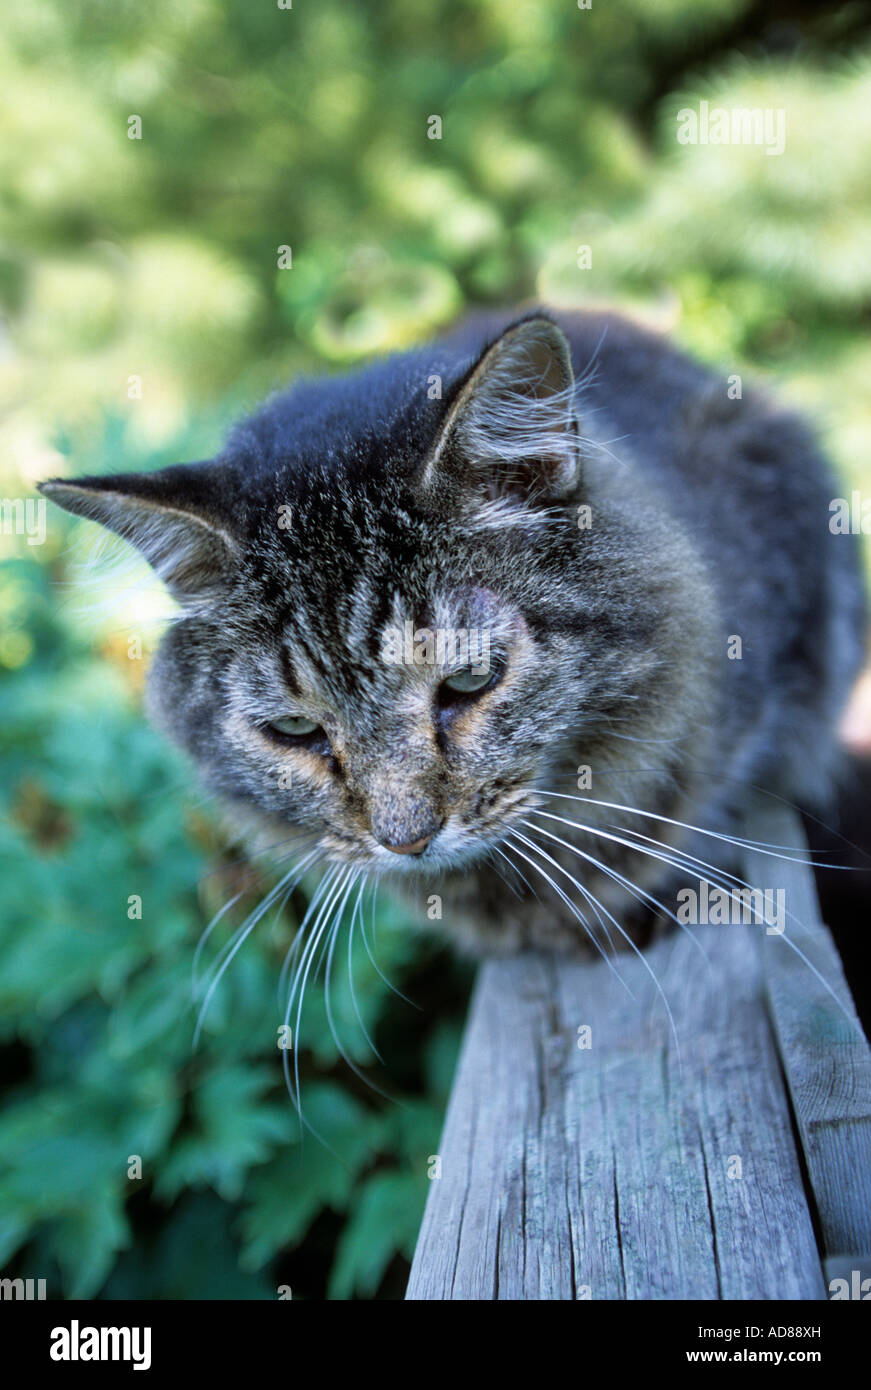 CAT SITS ON FENCE IN MINNESOTA GARDEN. JULY. - Stock Image